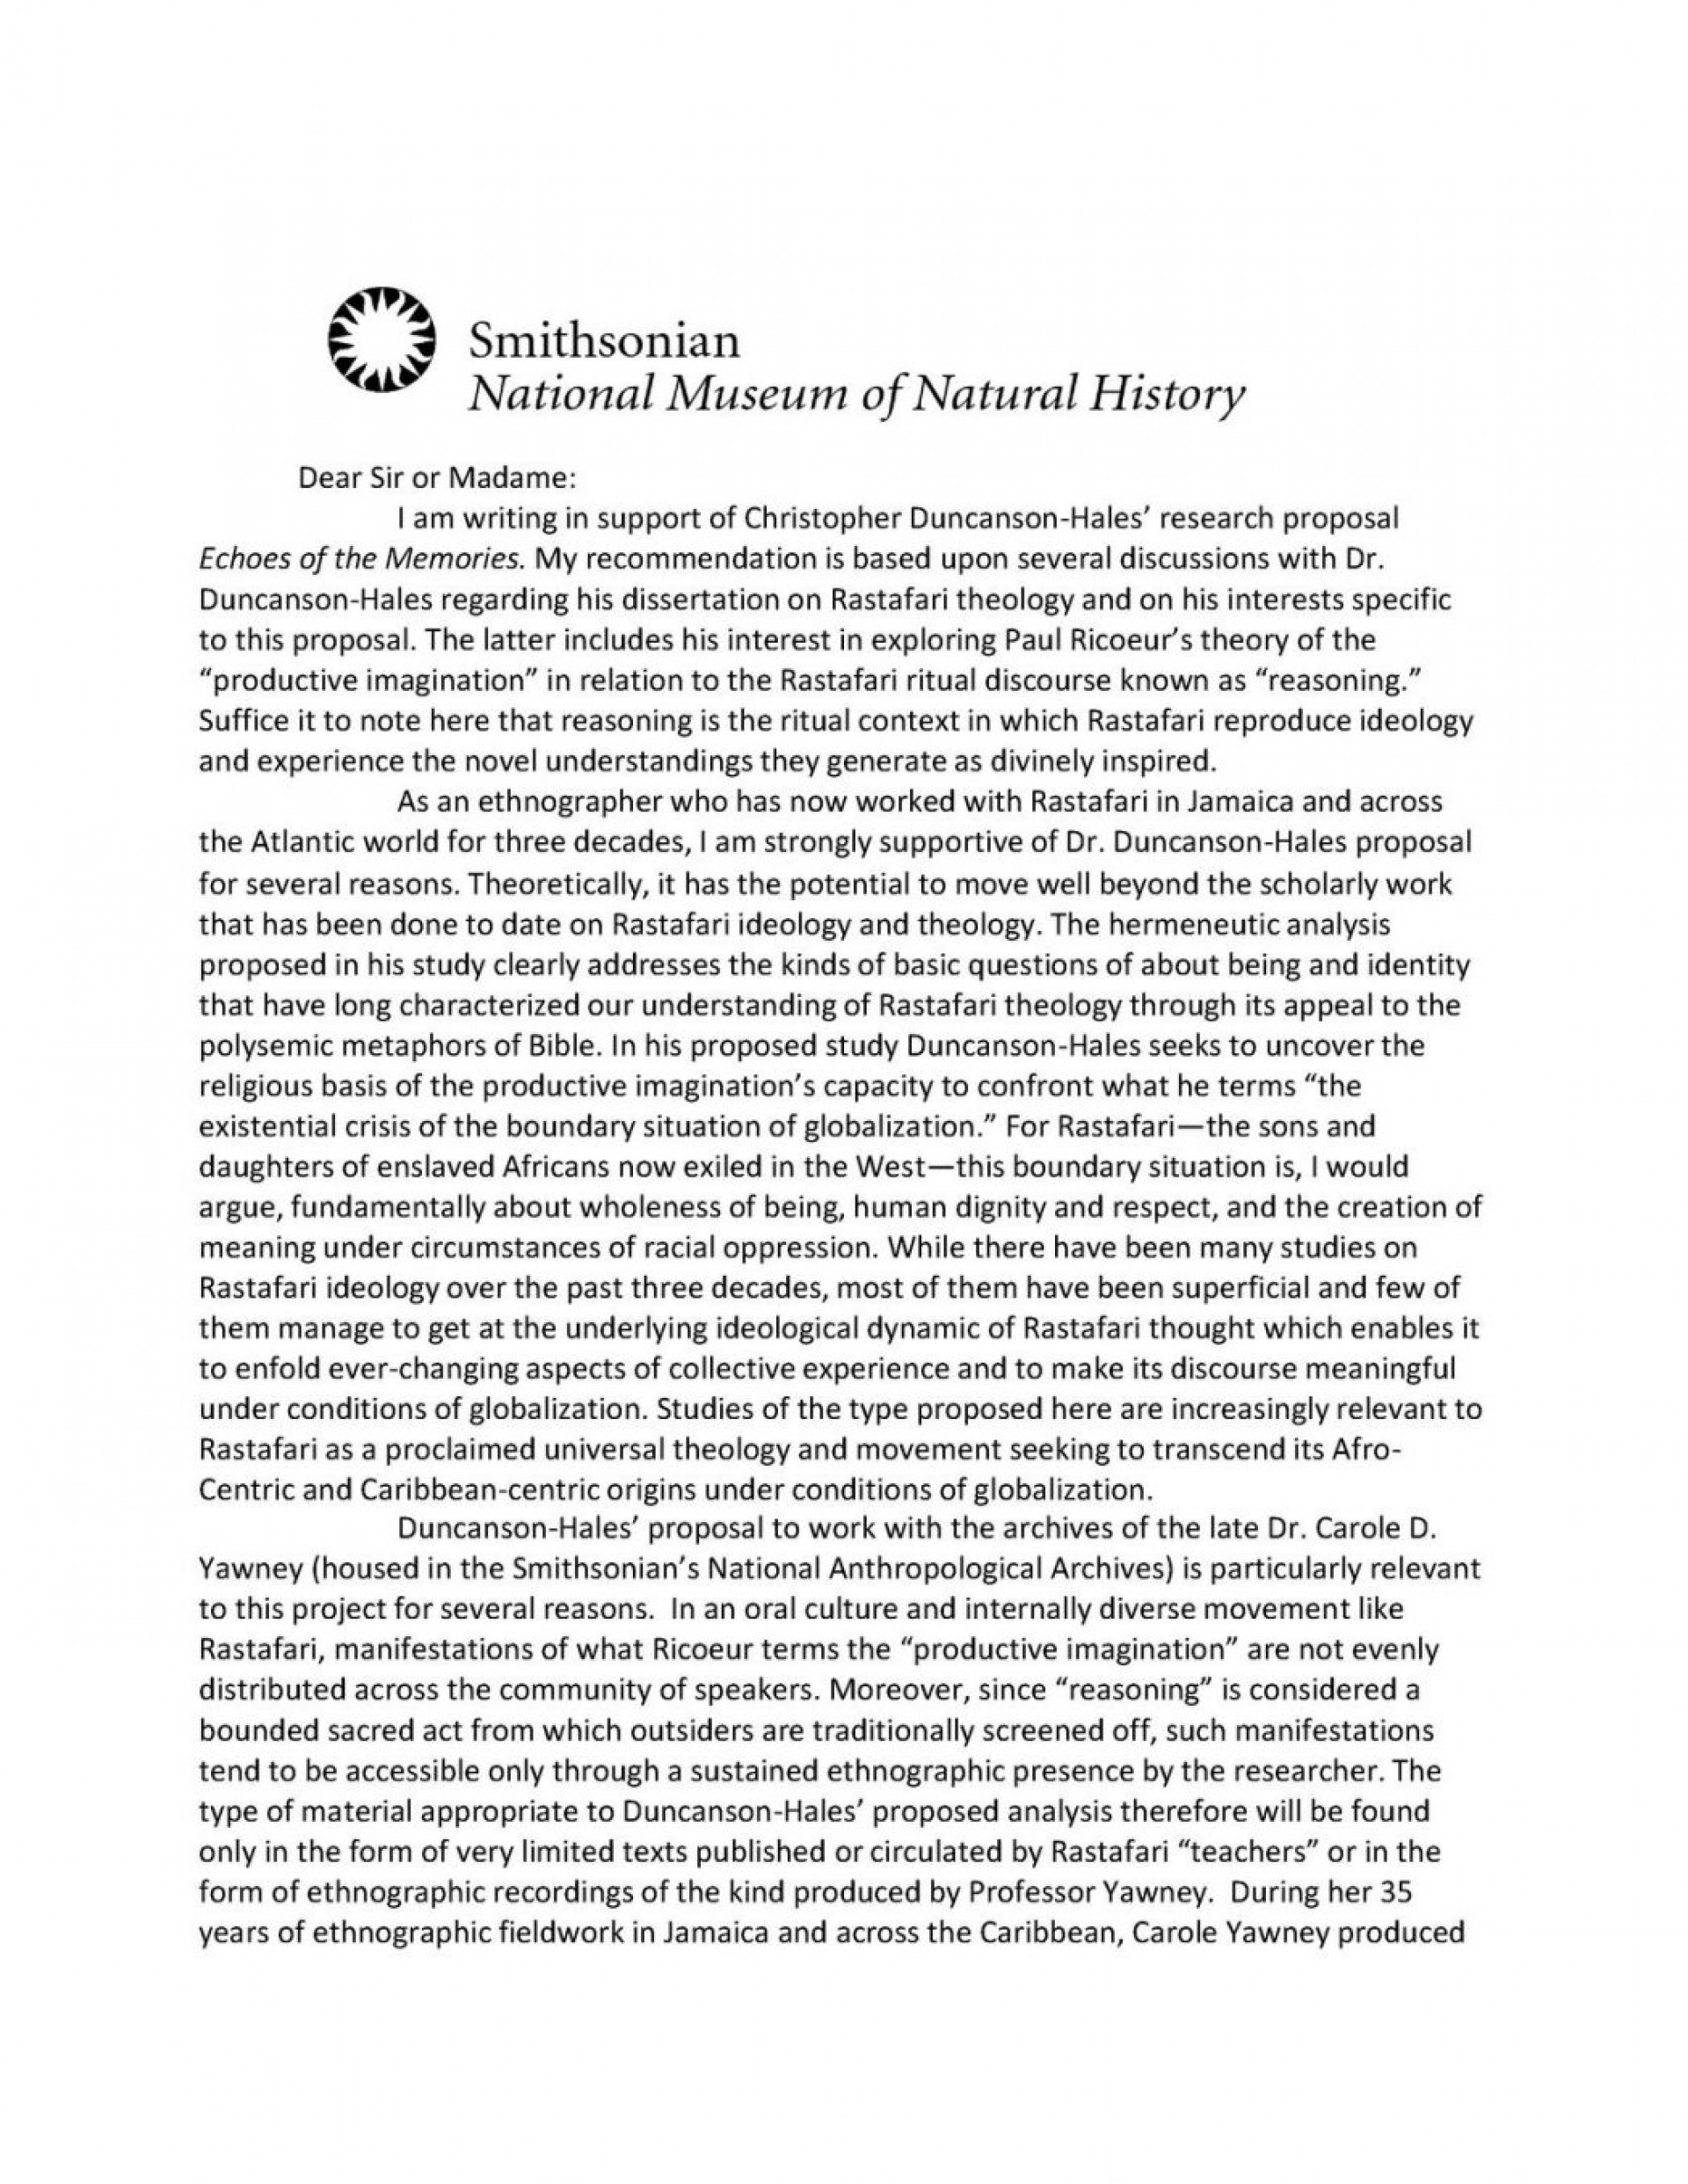 002 Ethnographic Essay Proposal Example Collect How To Write An Dr8 1048x1356 Unique Examples Micro Ethnography 1920